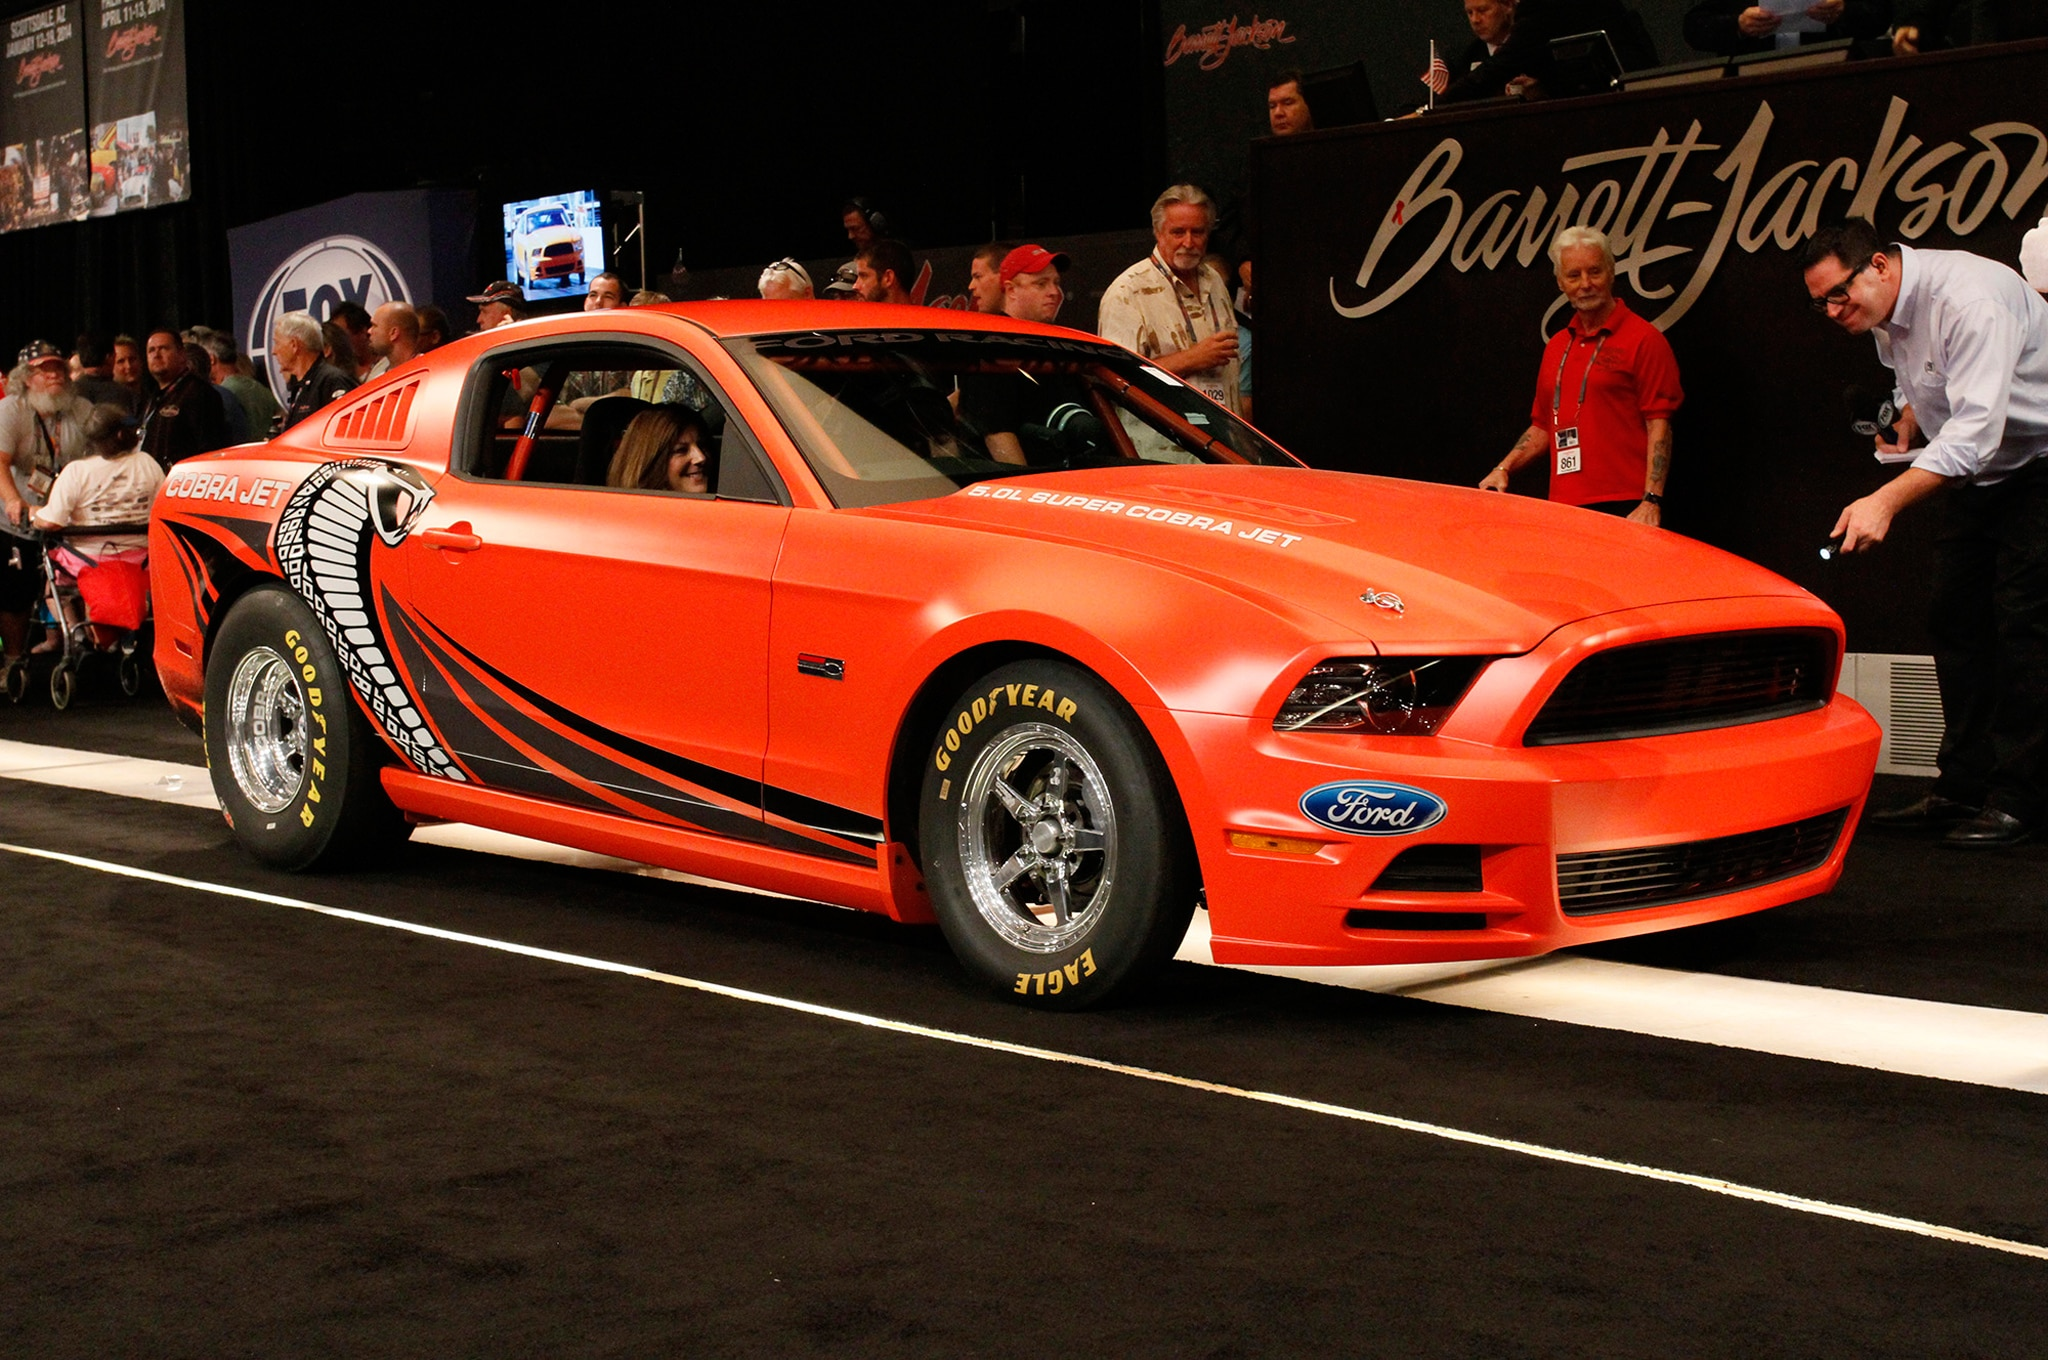 2014 Ford Mustang Cobra Jet Auction Close1